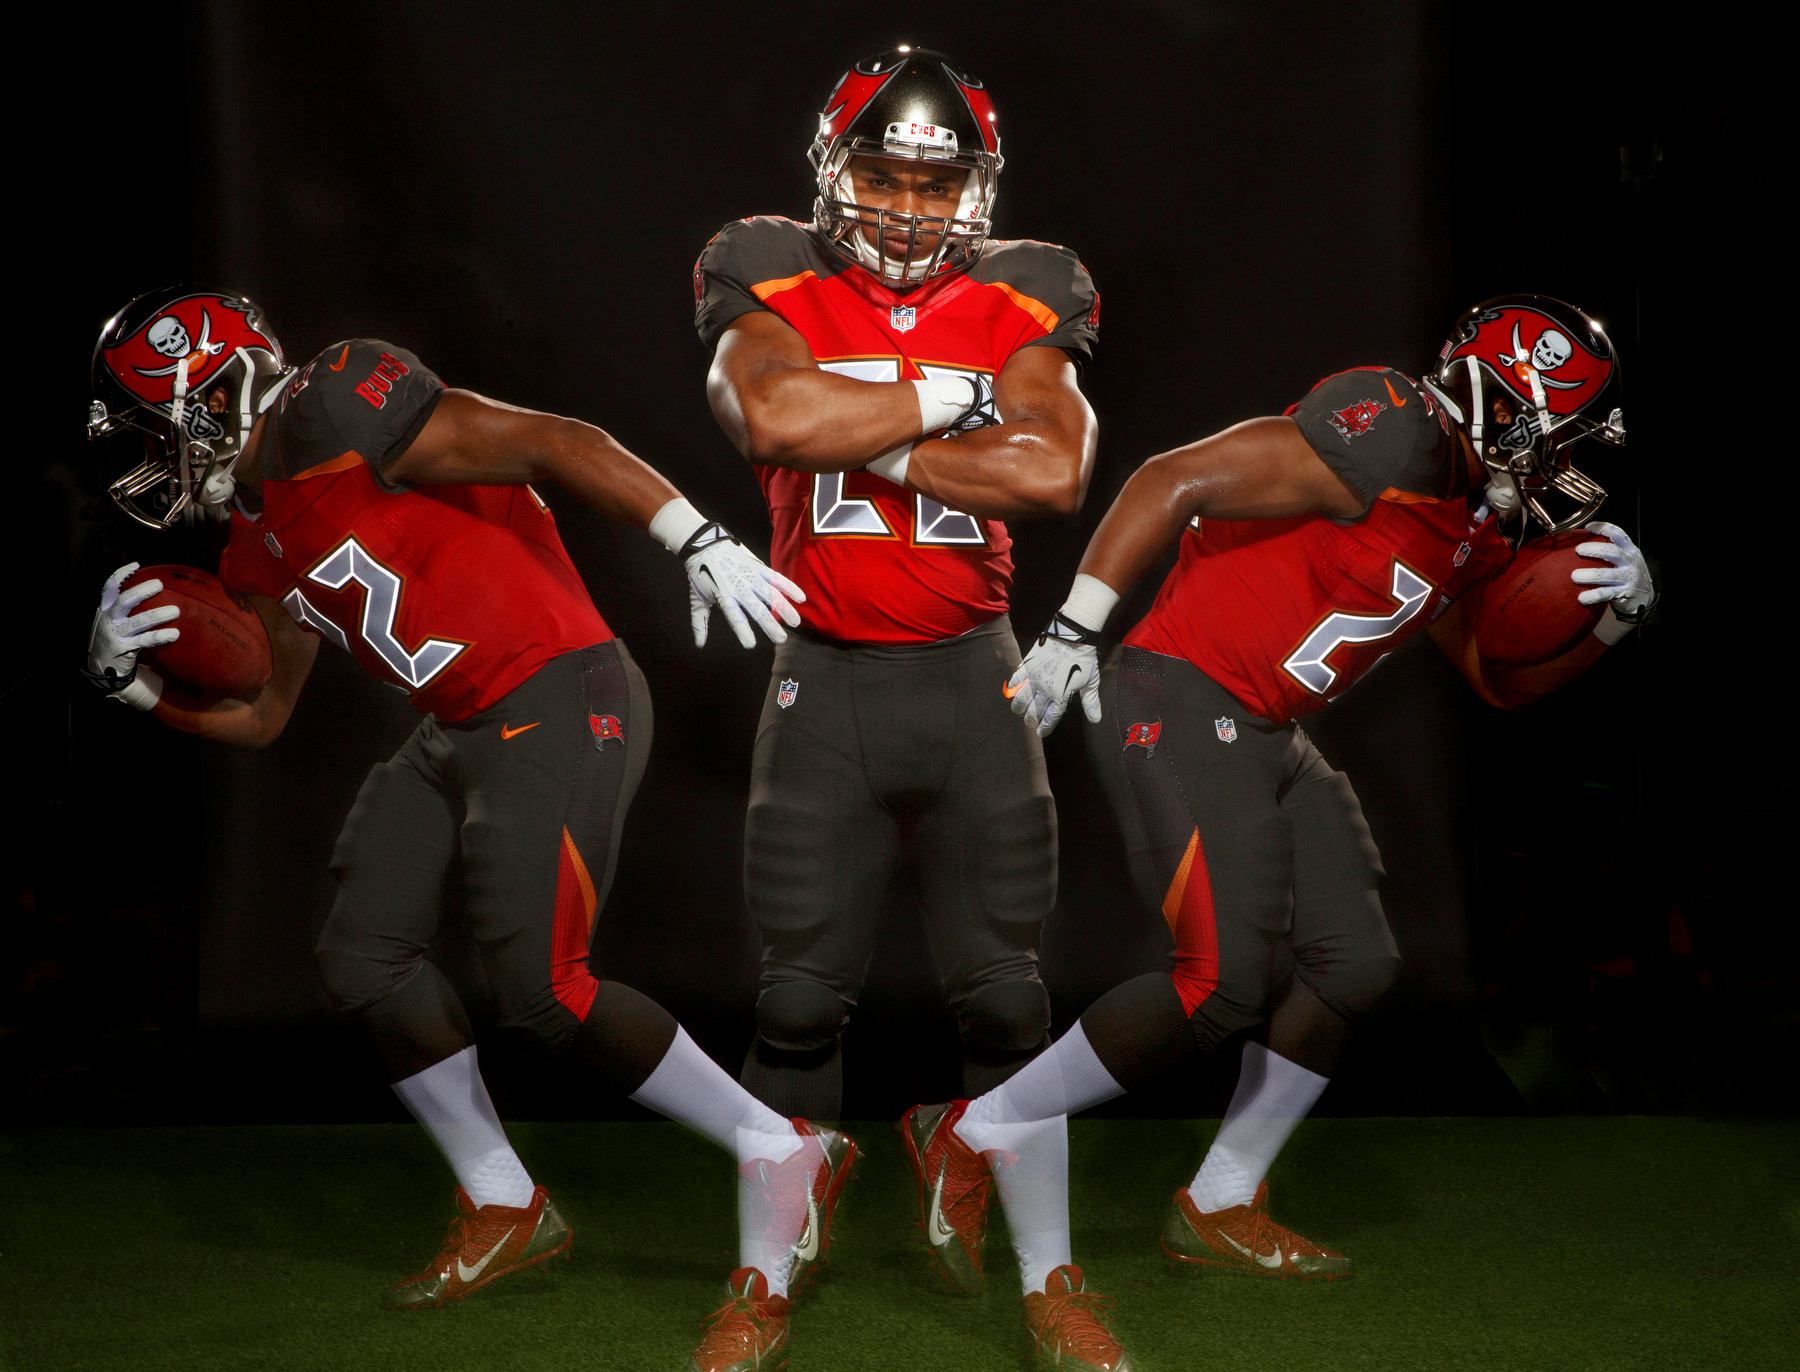 NFL Jerseys Wholesale - NFL Photography: The New Look Tampa Bay Buccaneers